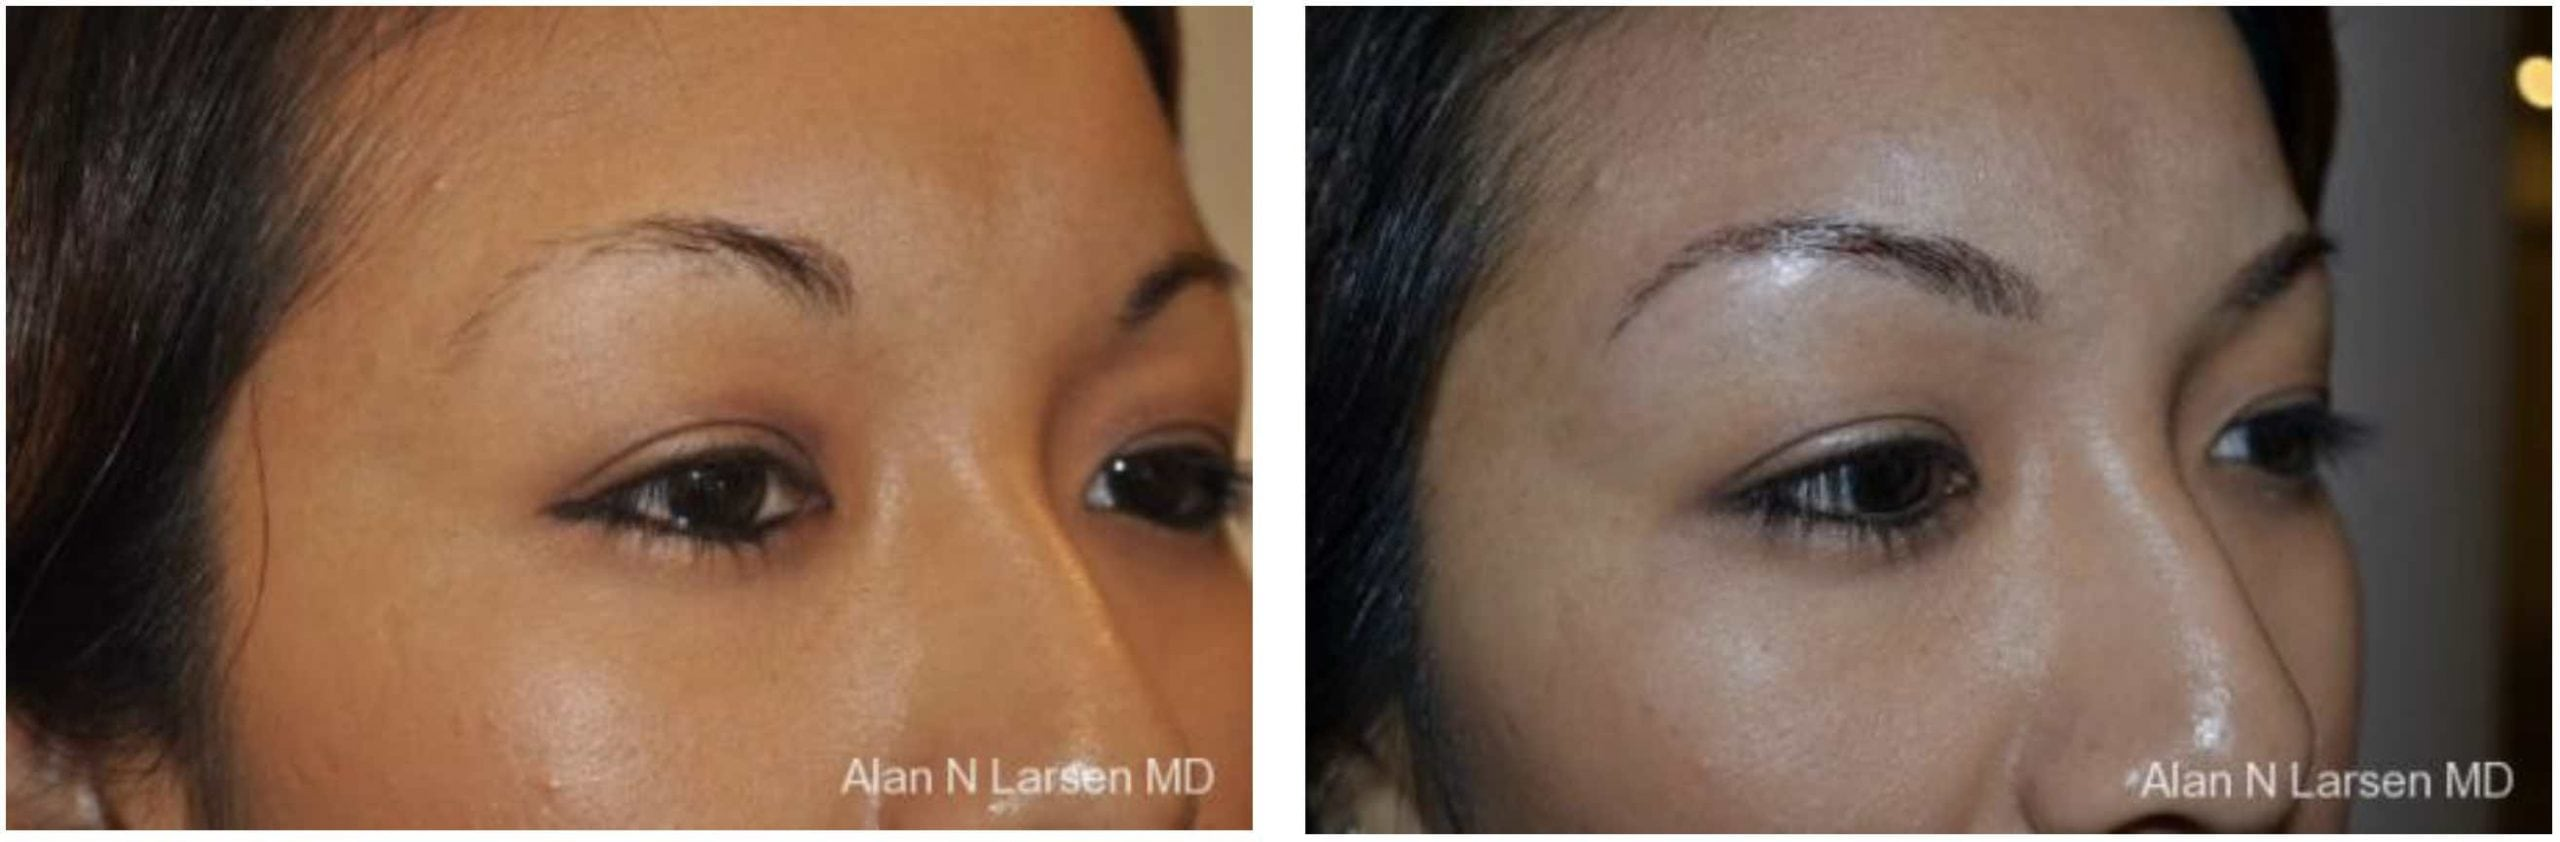 LUX Med Spa at Before and After Photo Gallery | Microblading | Buckhead Plastic Surgery | Alan N. Larsen, MD | Board-Certified Plastic Surgeon | Atlanta GA